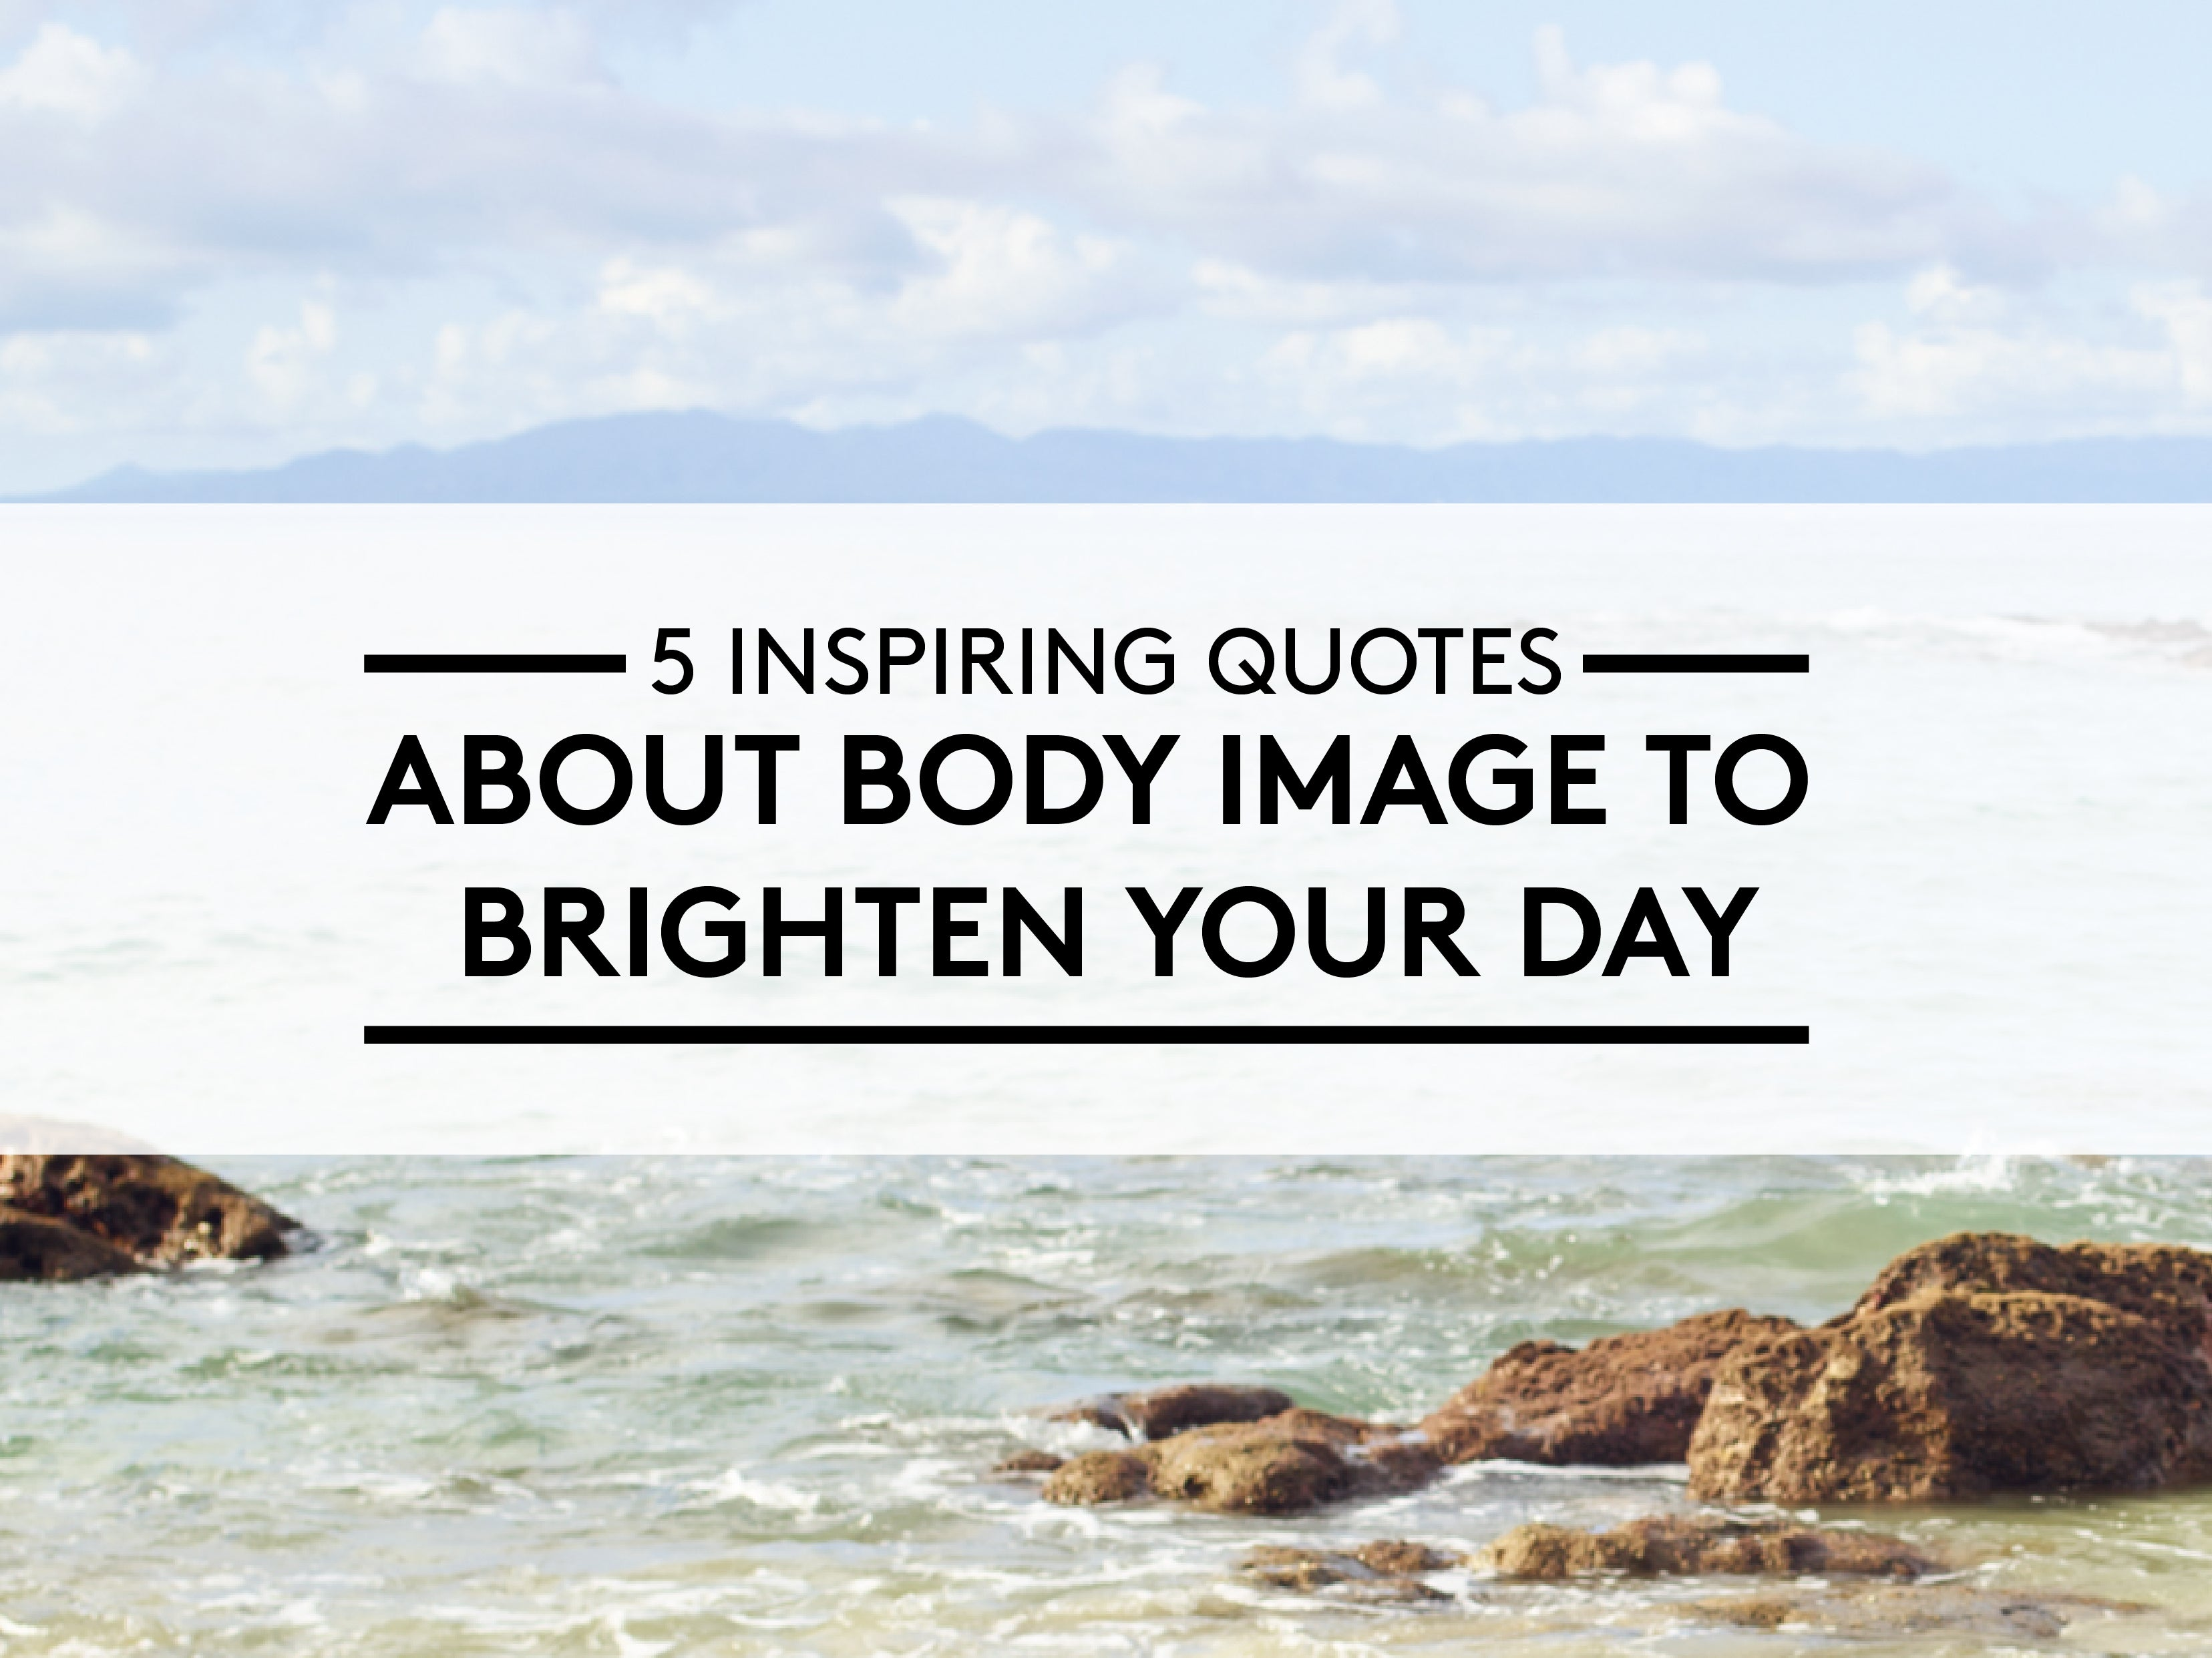 5 Inspiring Quotes About Body Image to Brighten Your Day